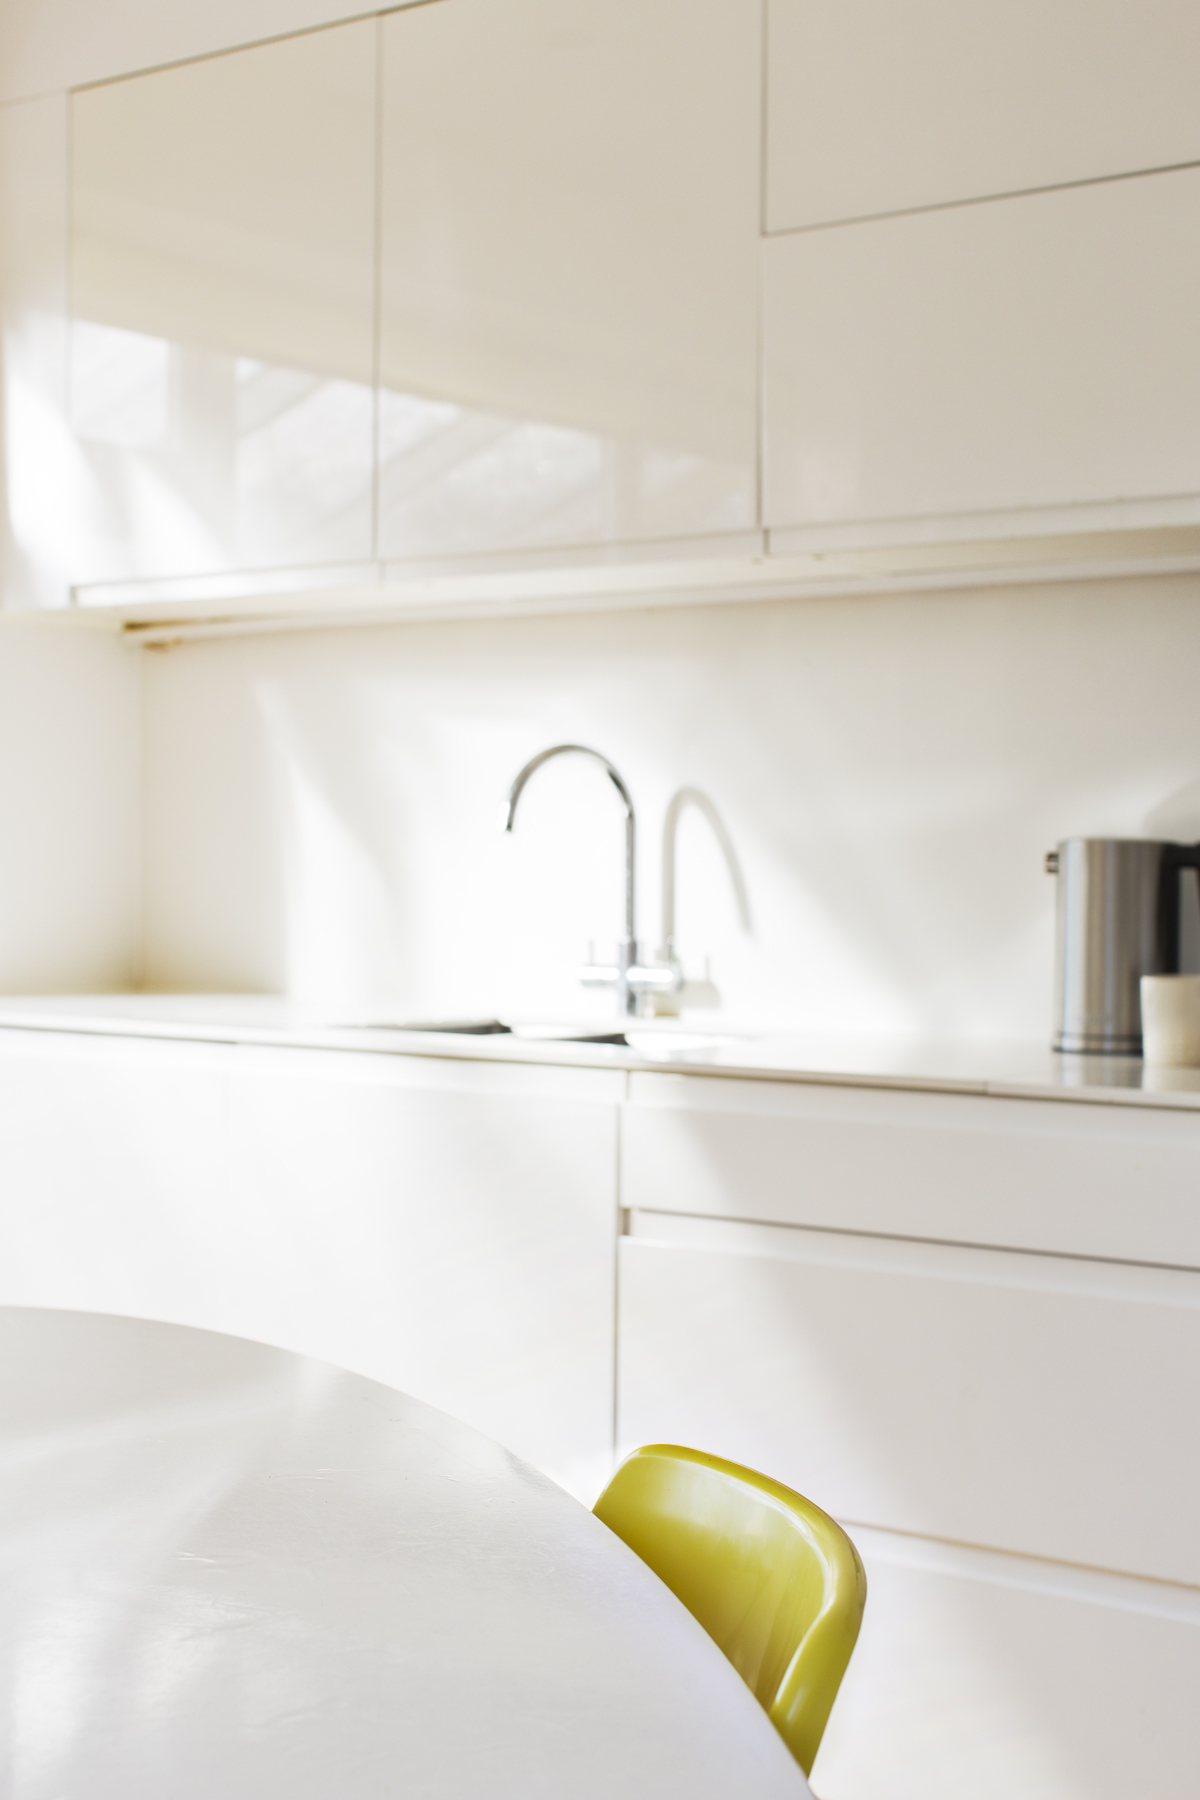 White modern kitchen cabinets and faucet